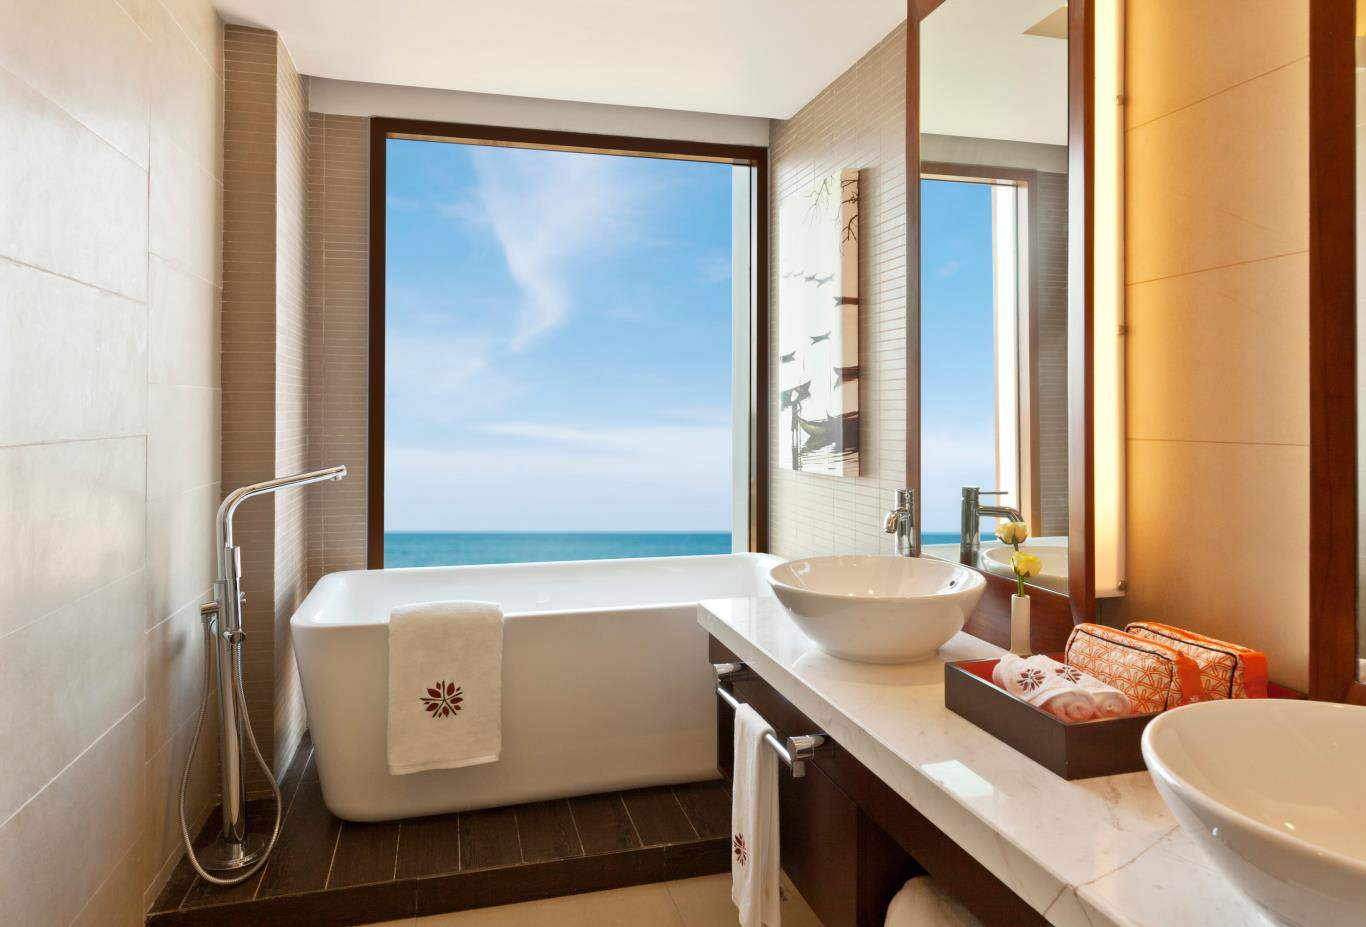 SkyPool Seaview Two Bedroom-Loft-bathroom